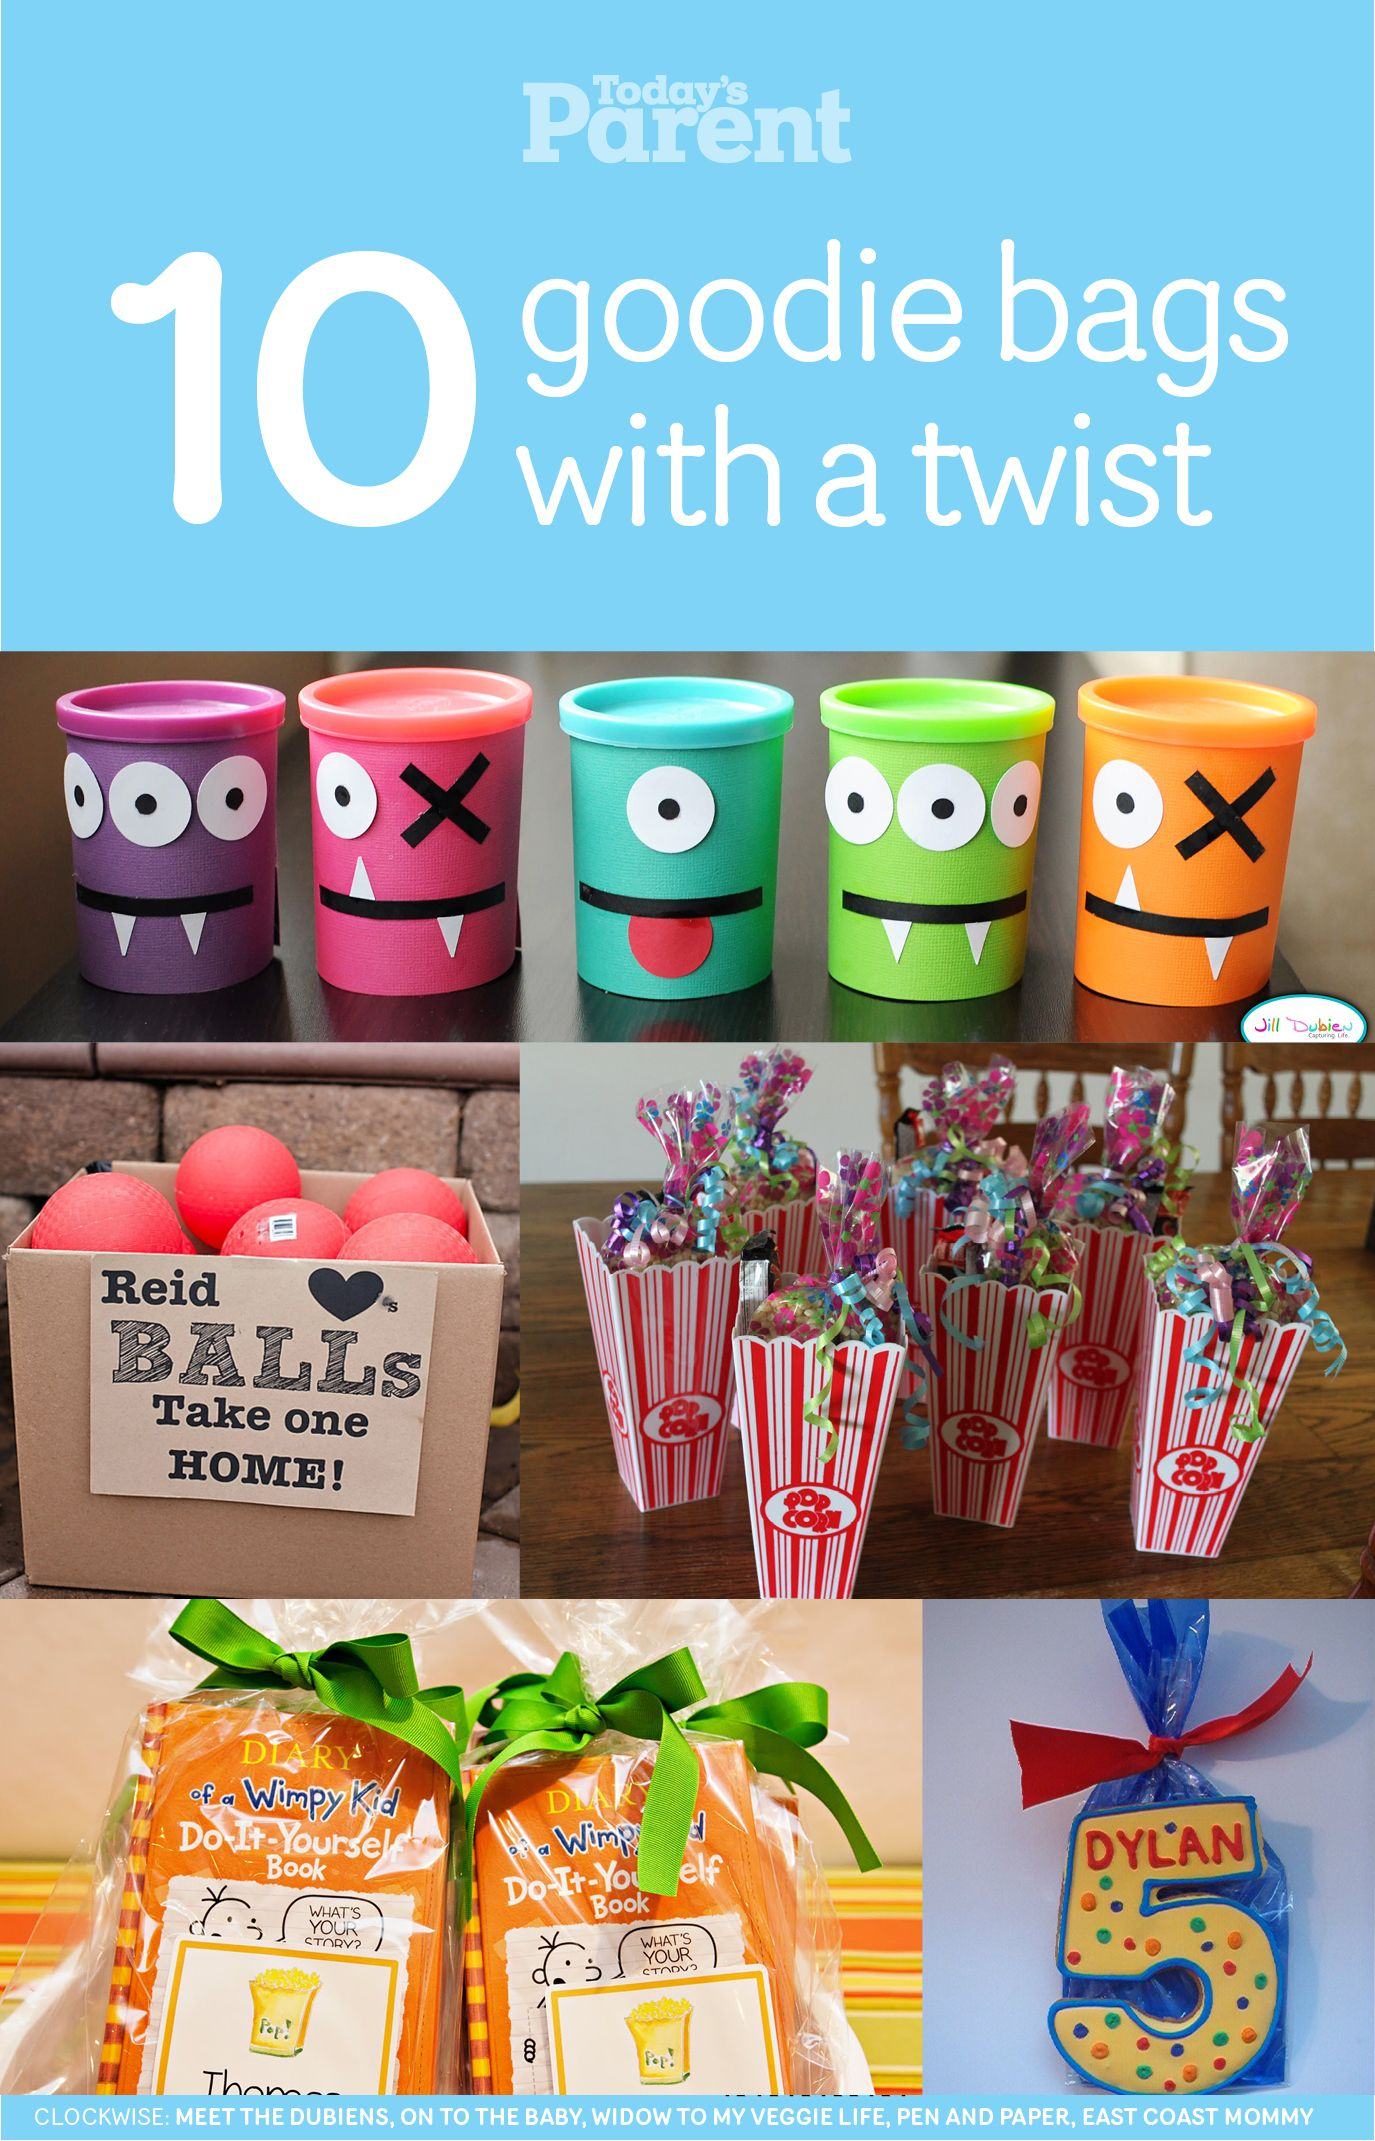 14 Goodie Bags With A Twist Party Favors For Kids